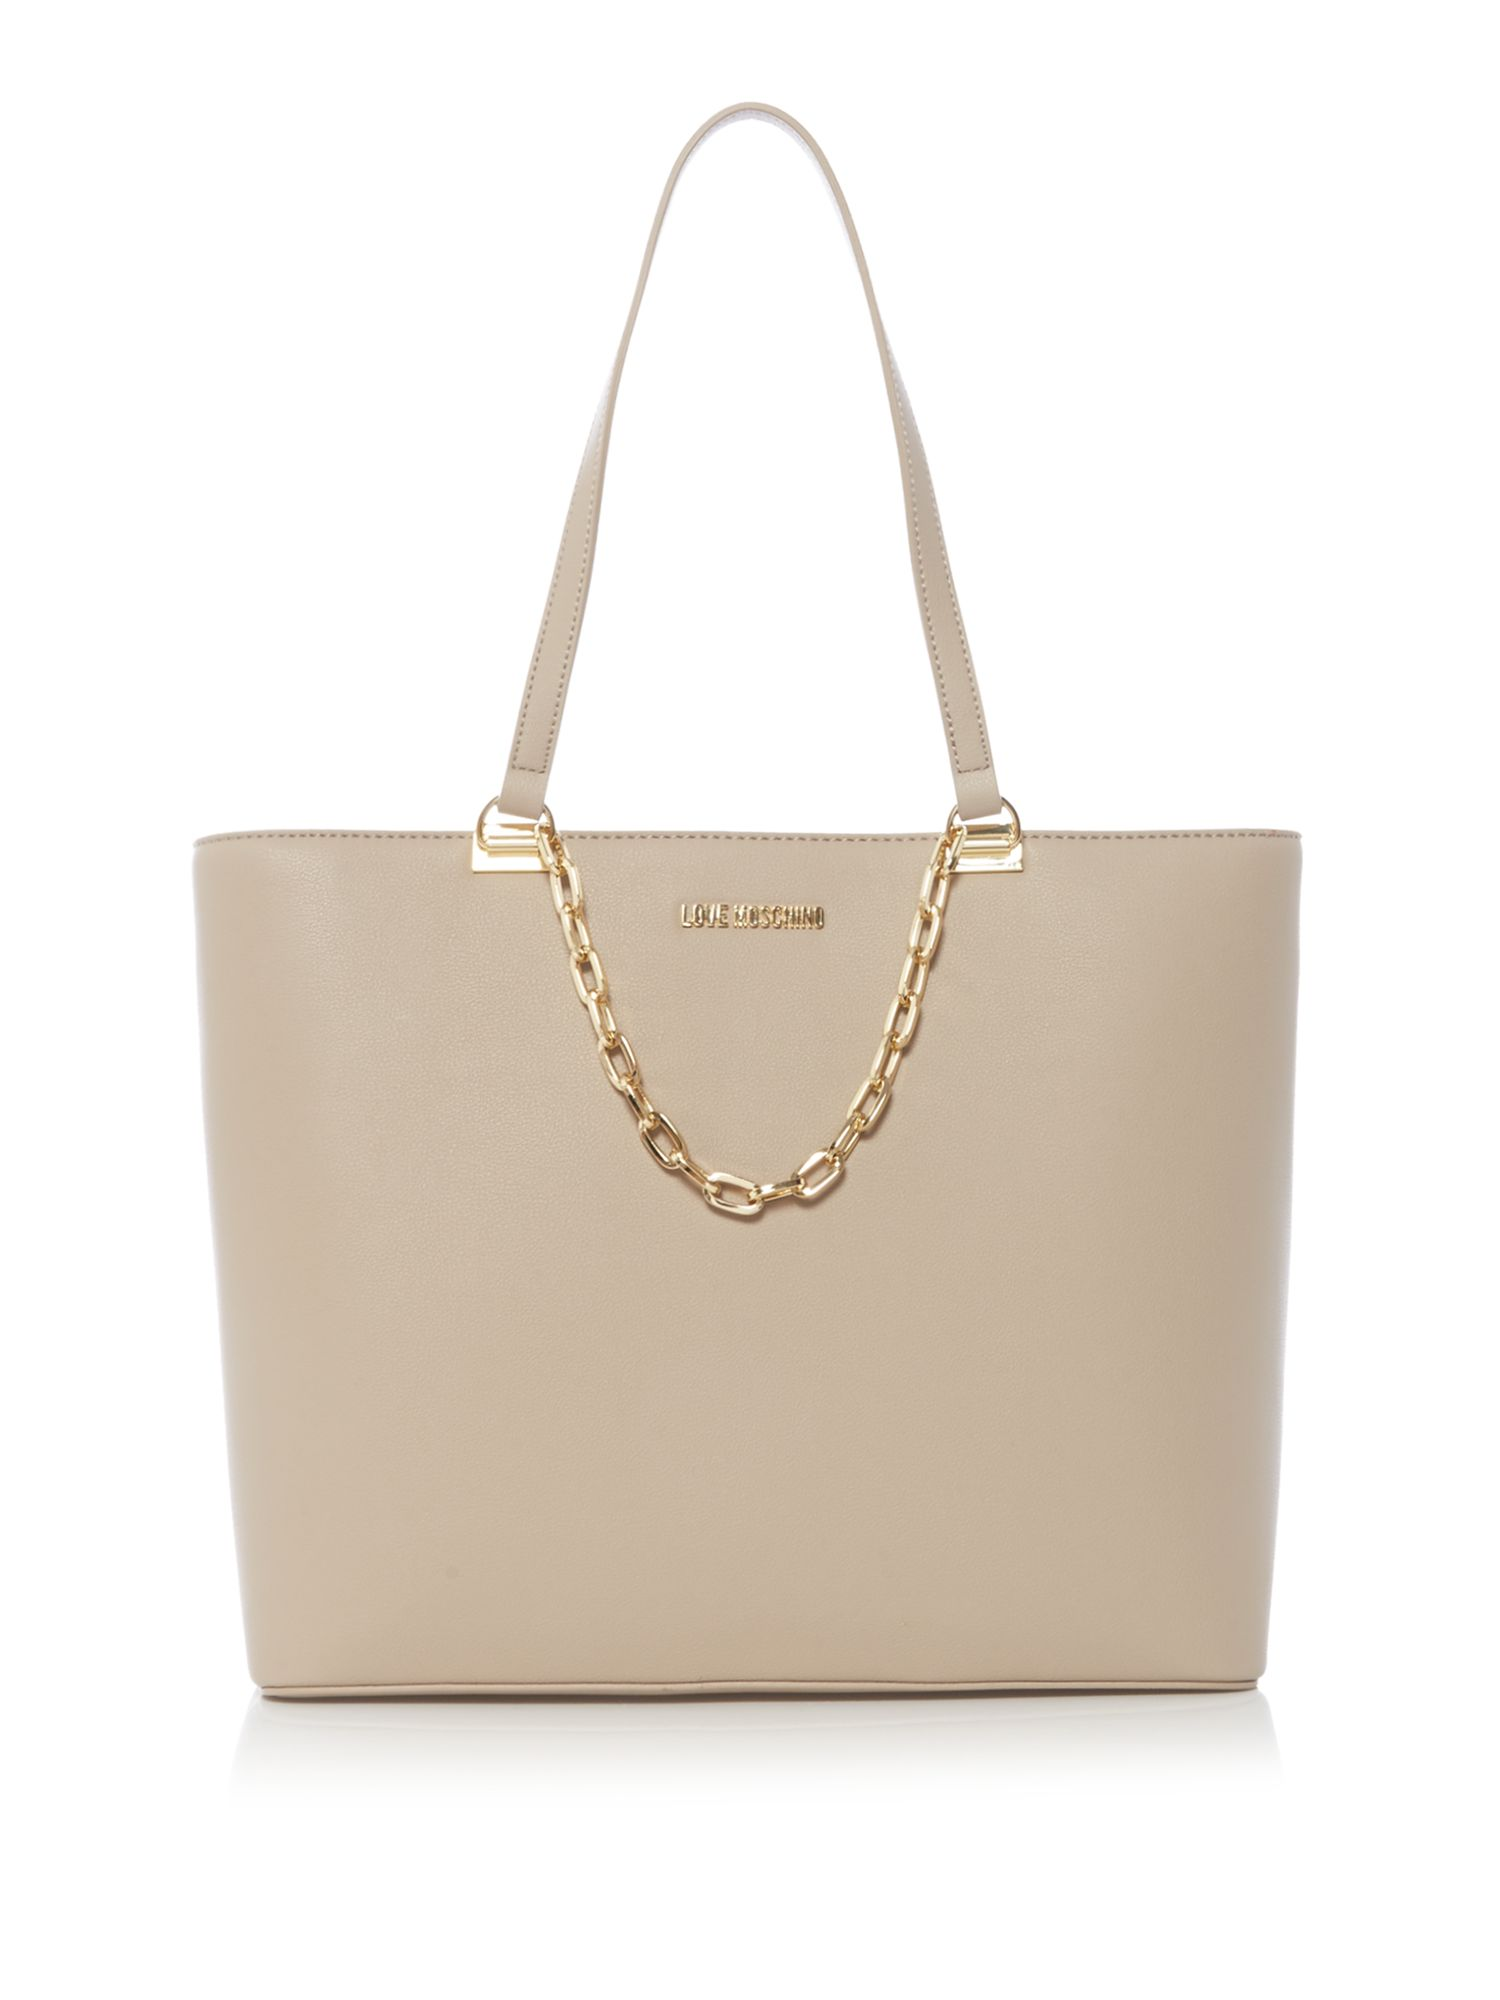 Love Moschino Gold chain large tote bag, Taupe